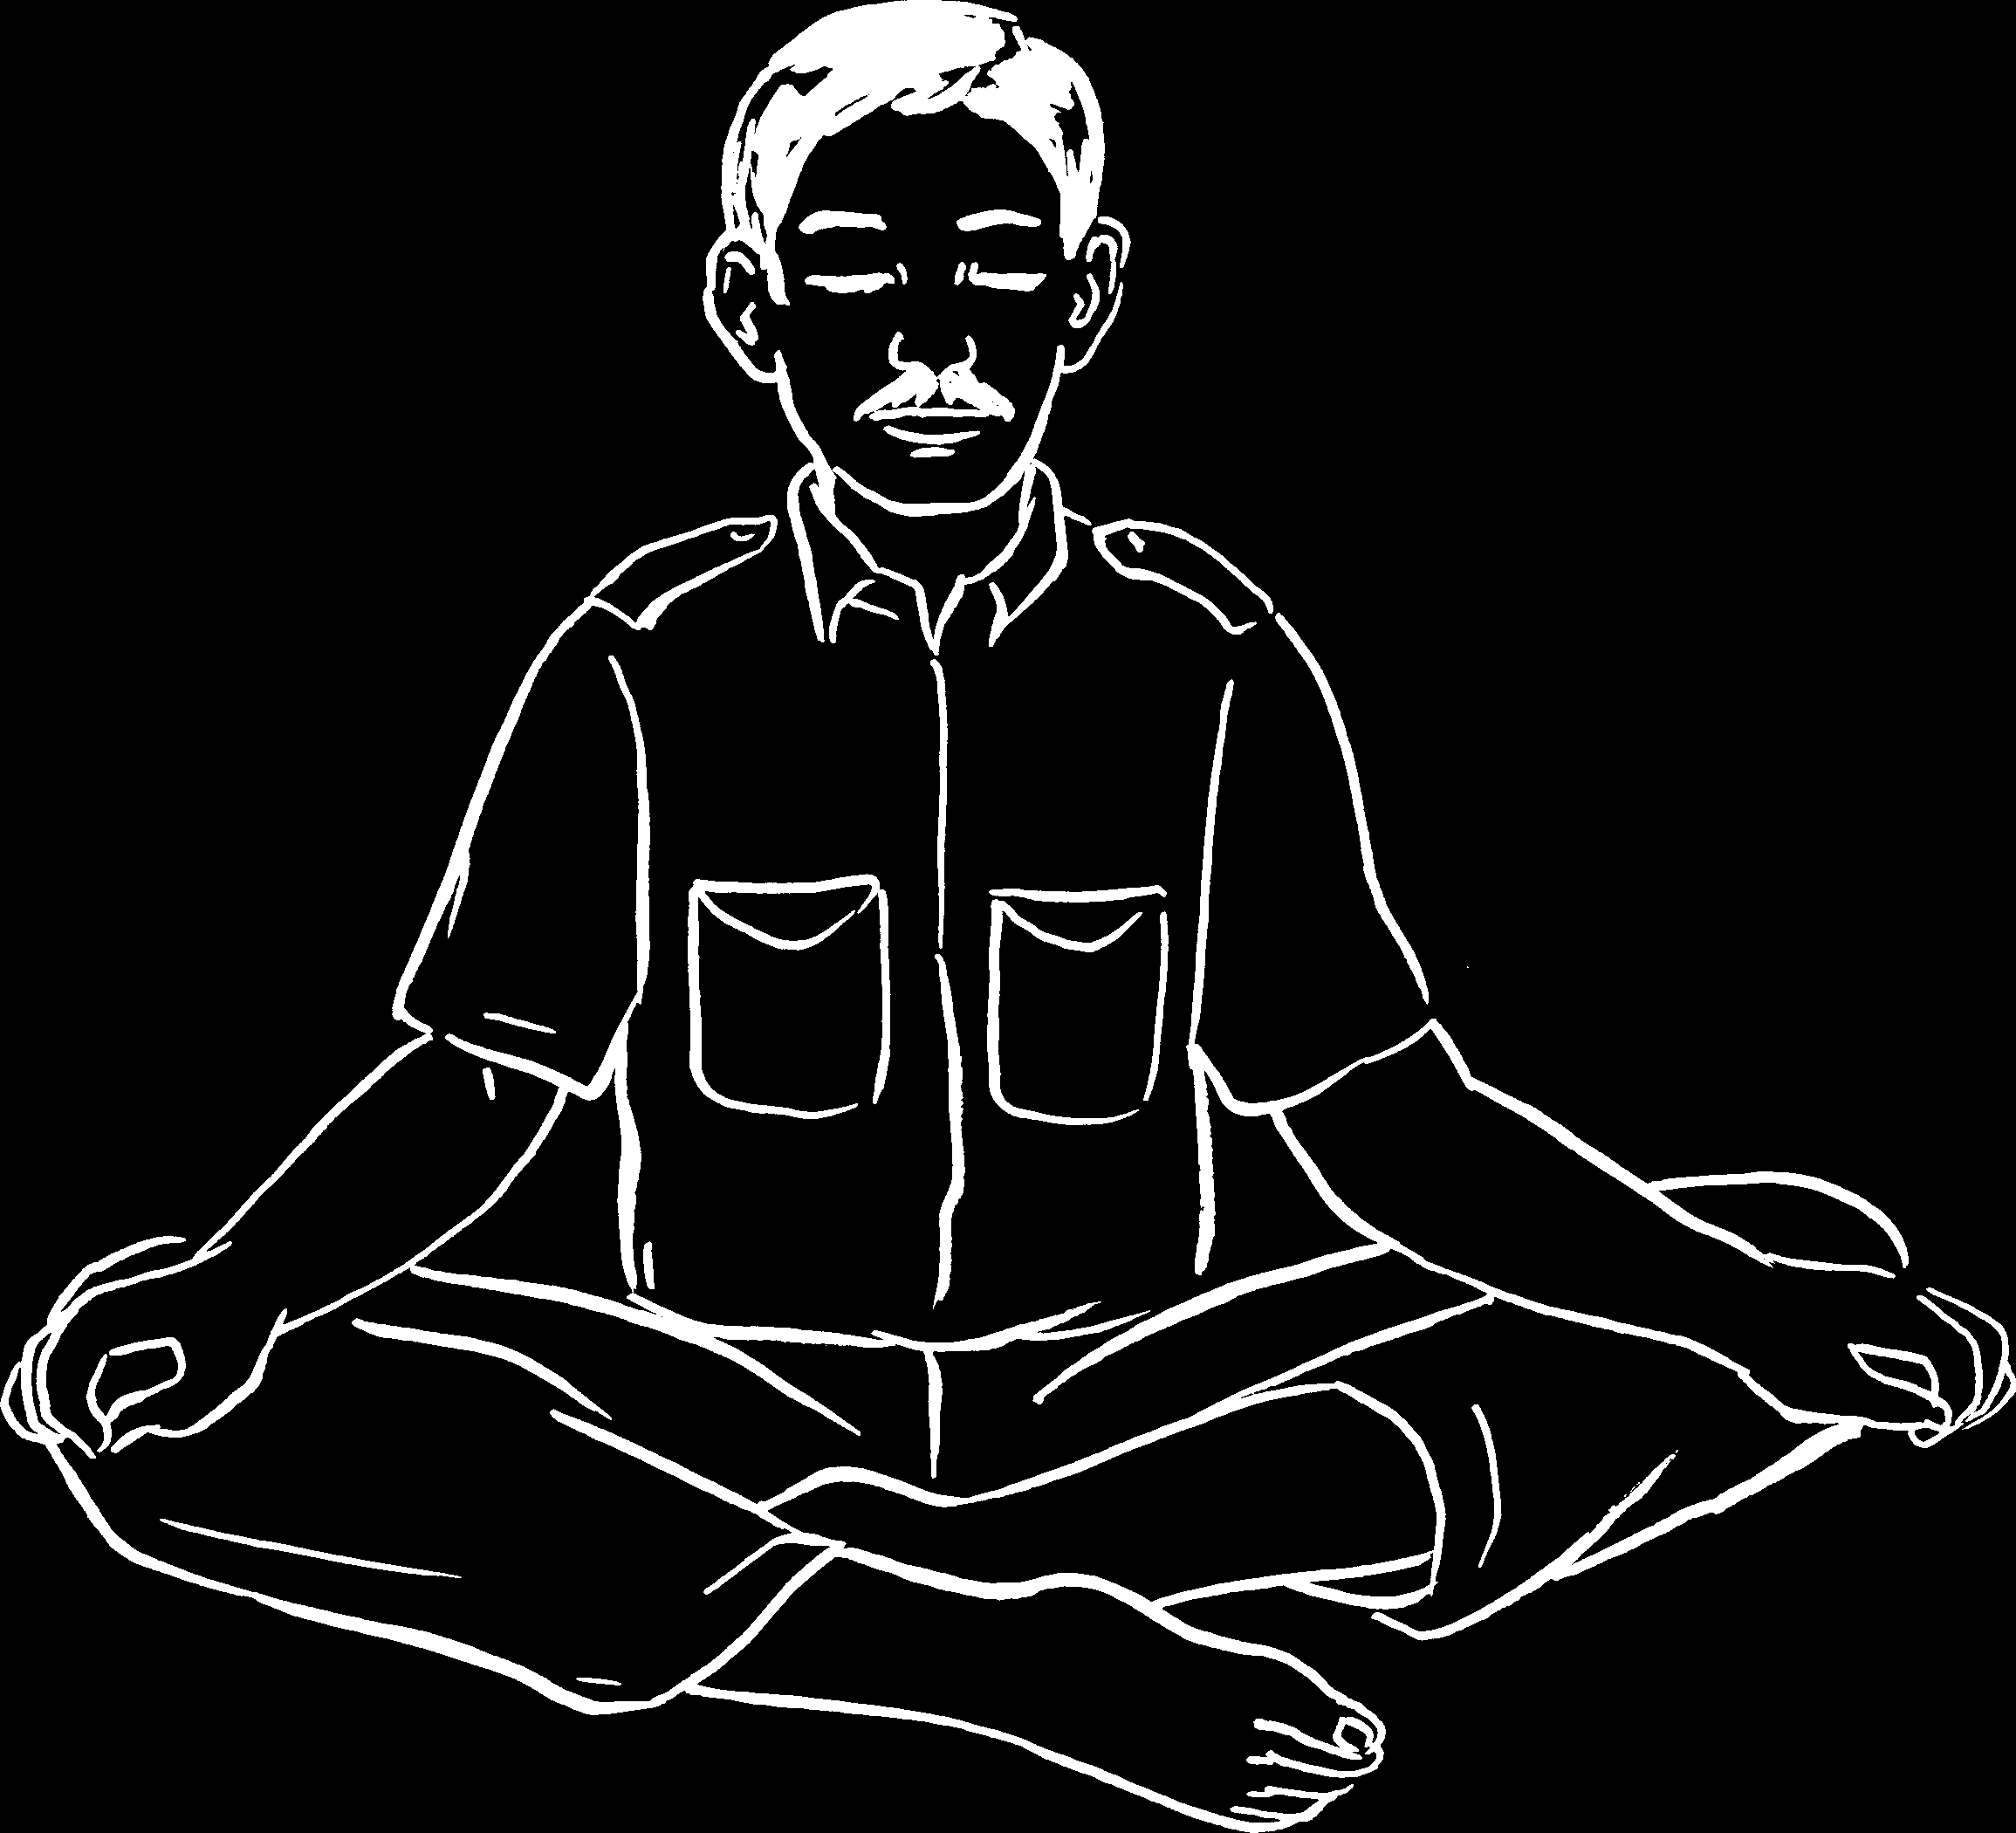 Relaxation and meditation. Relaxation exercises ( section 3.2.3) can be very helpful in dealing with stress when practised daily.